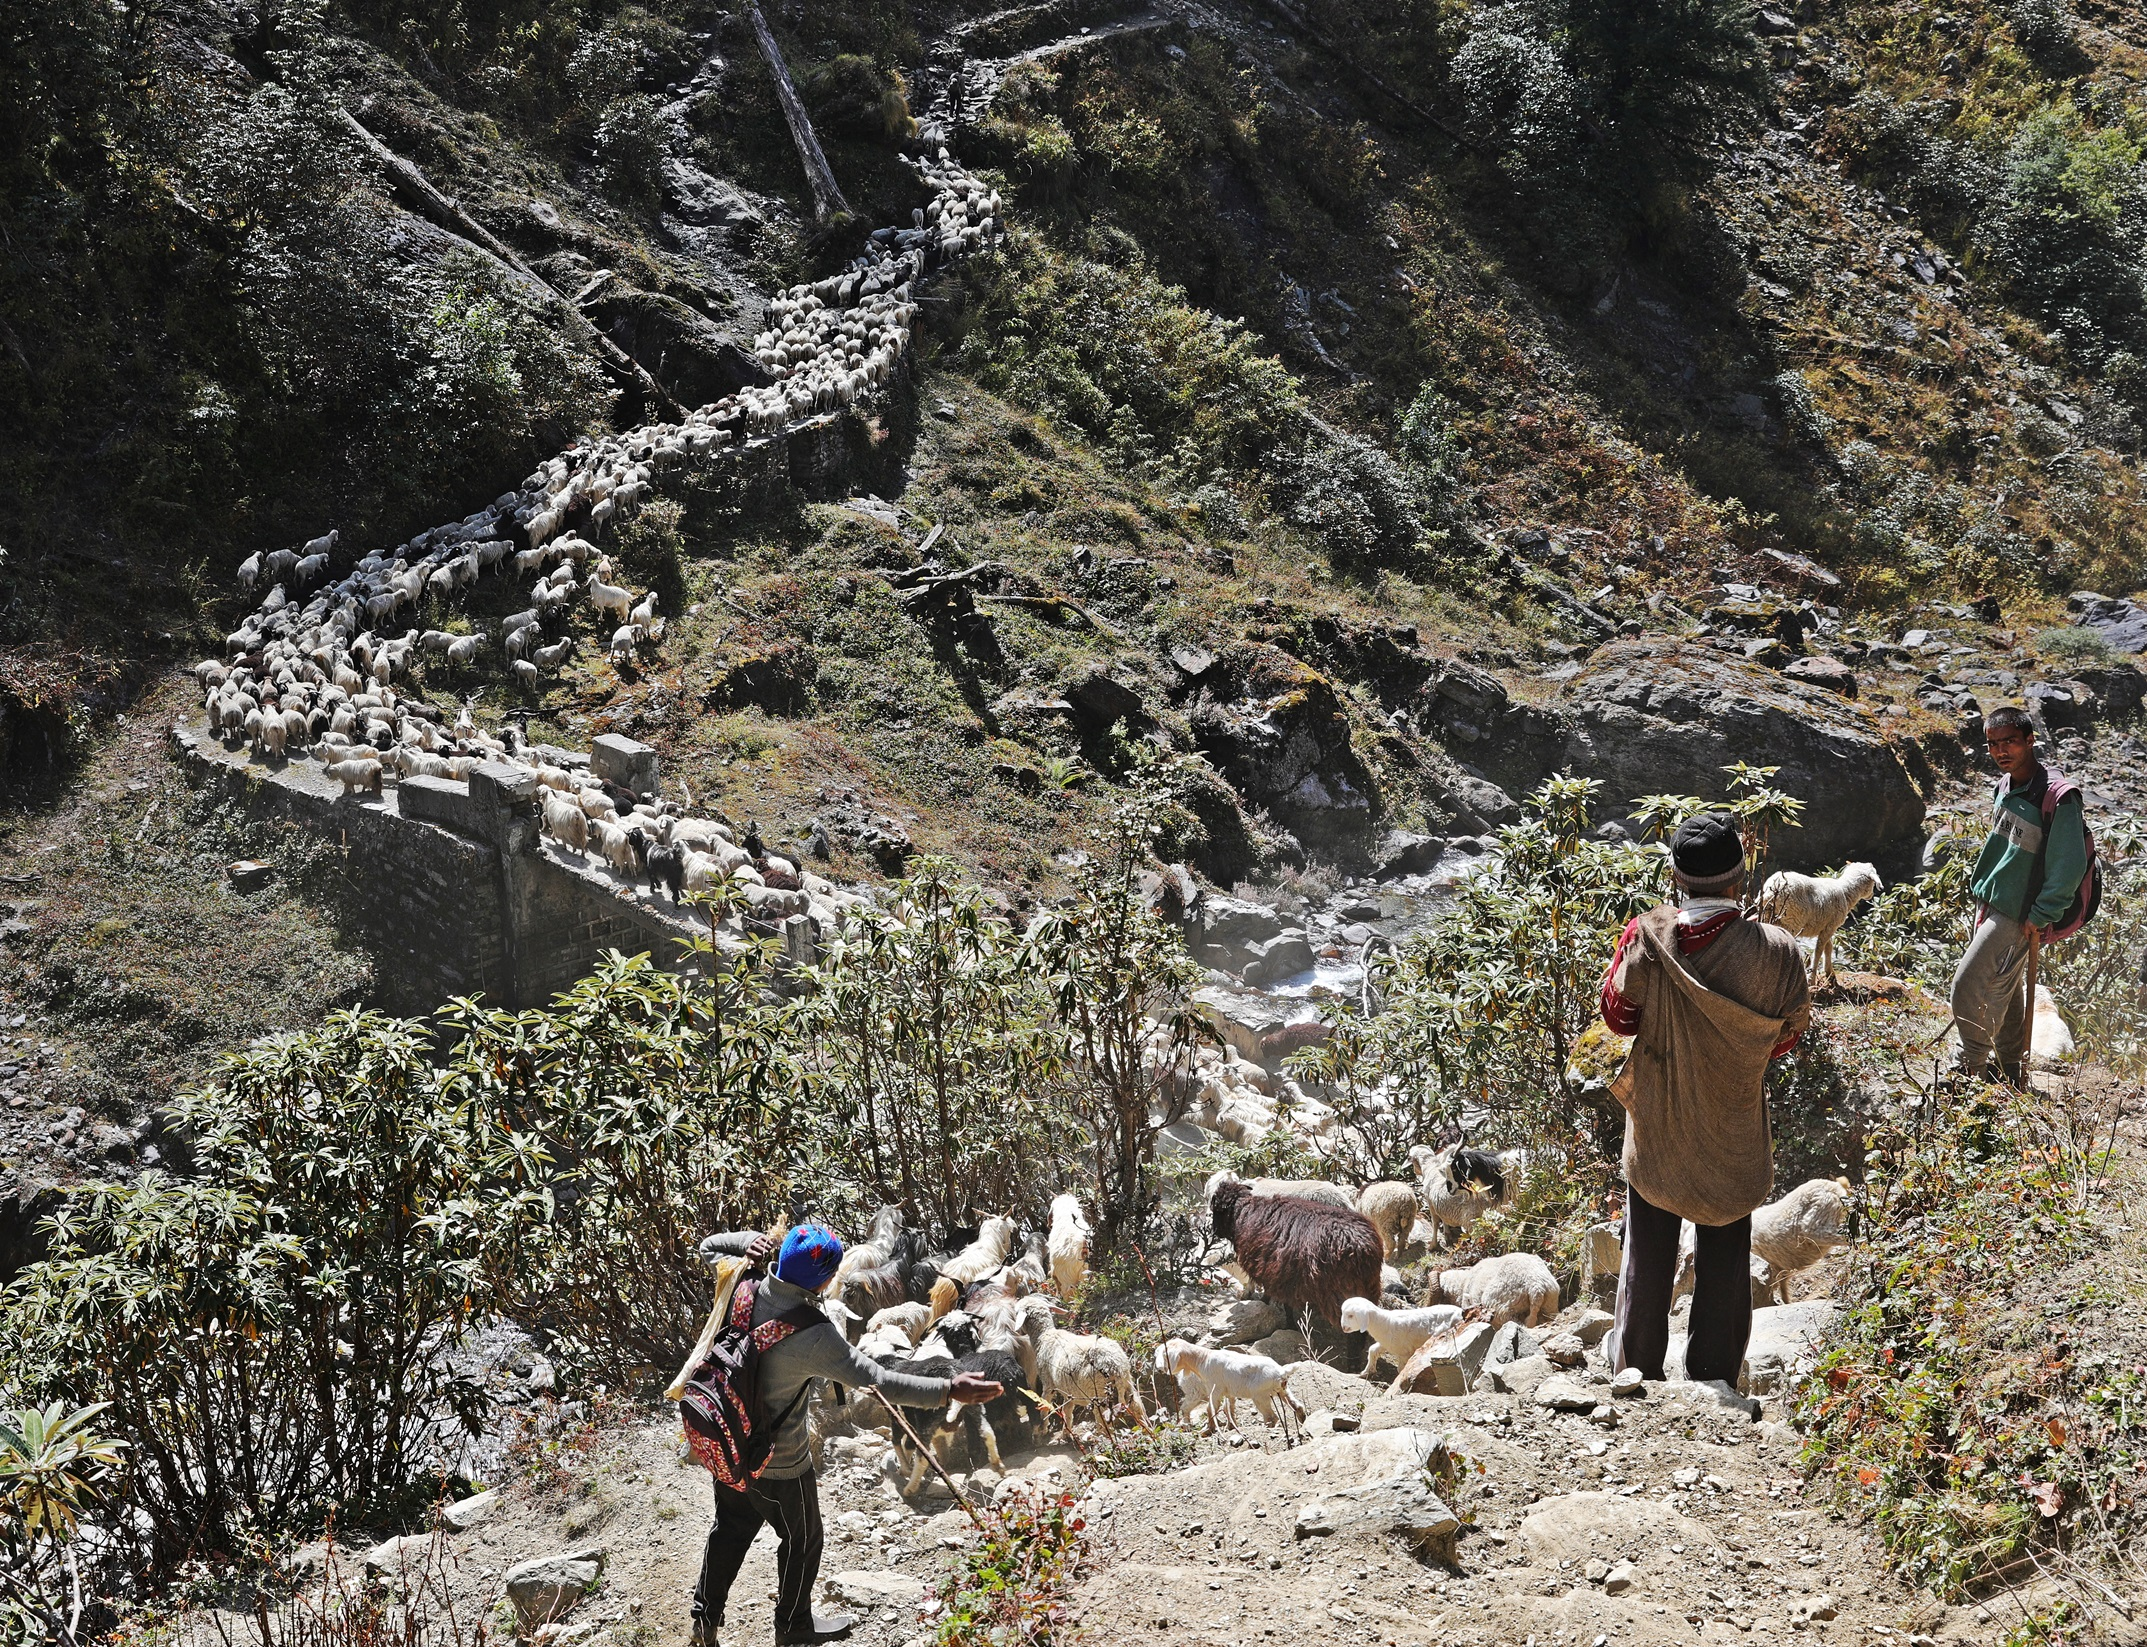 A large flock of sheep  and goats on the trekking trail